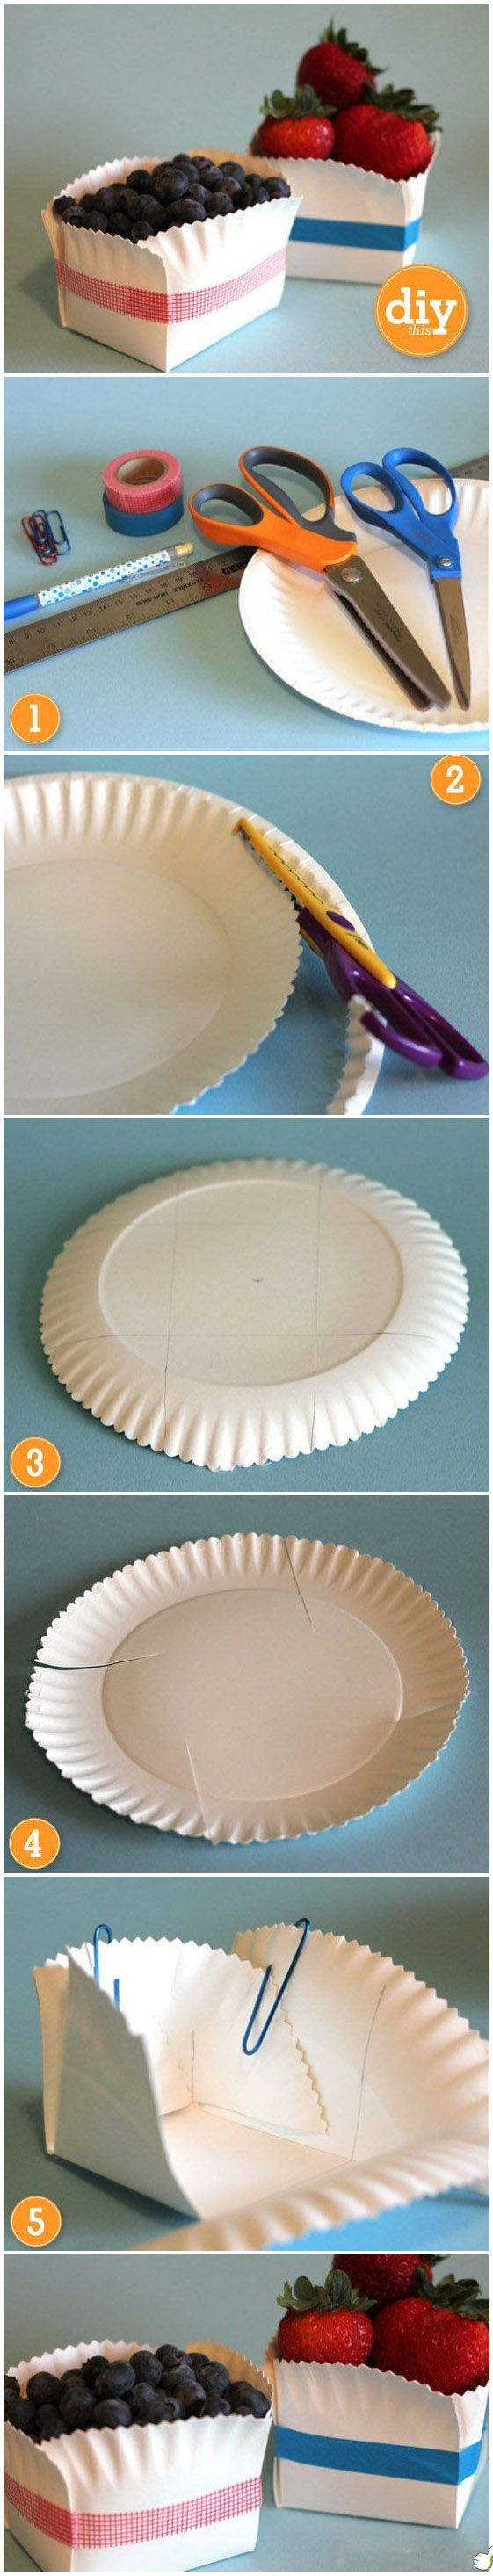 pictorial tute for the paper plate basket